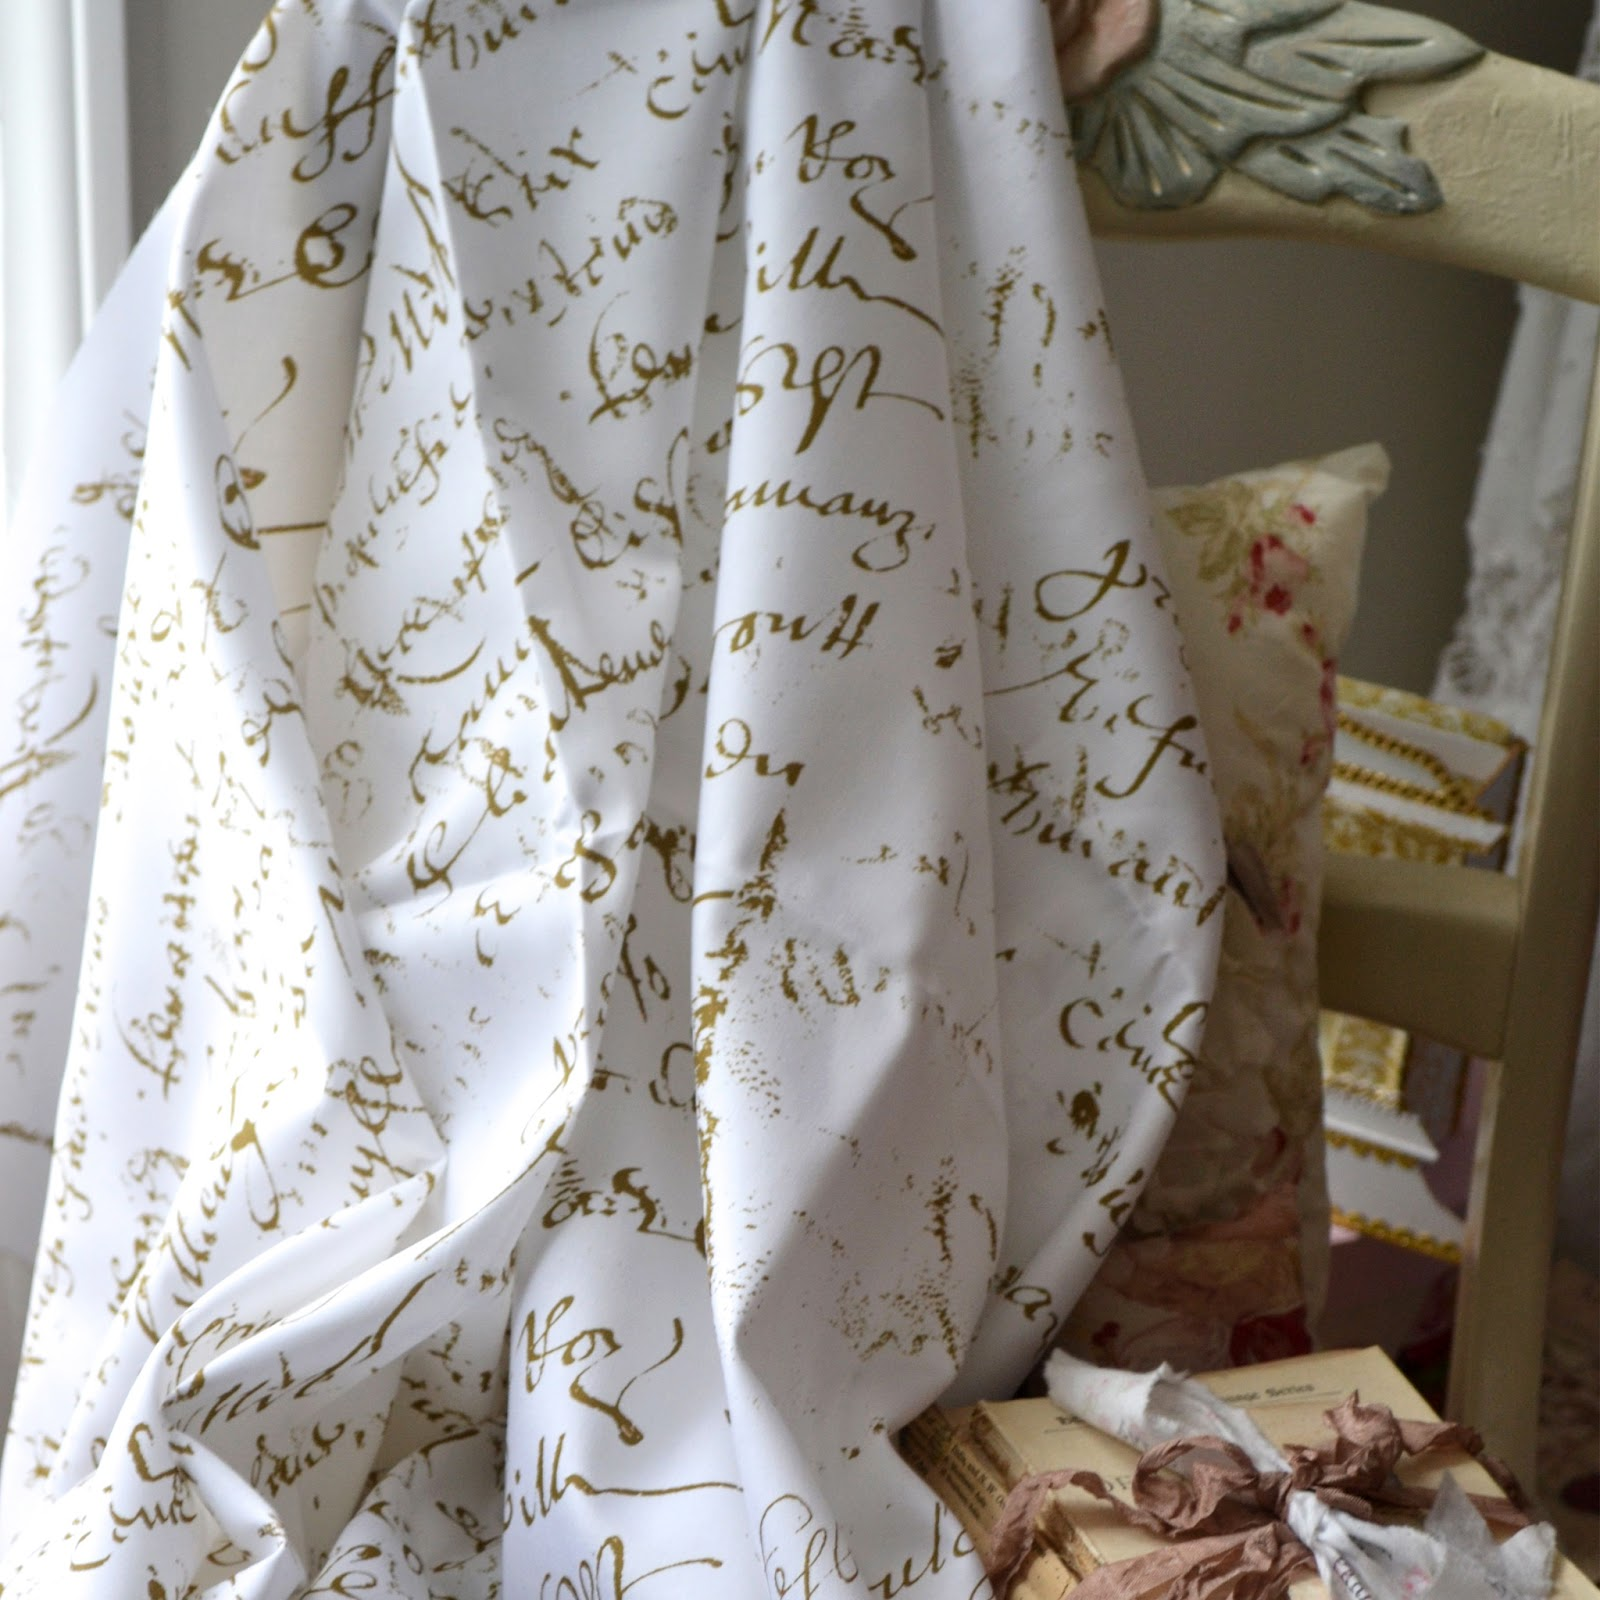 Curtains Source A SCRAPBOOK OF INSPIRATION French Script Fabric Inspiration